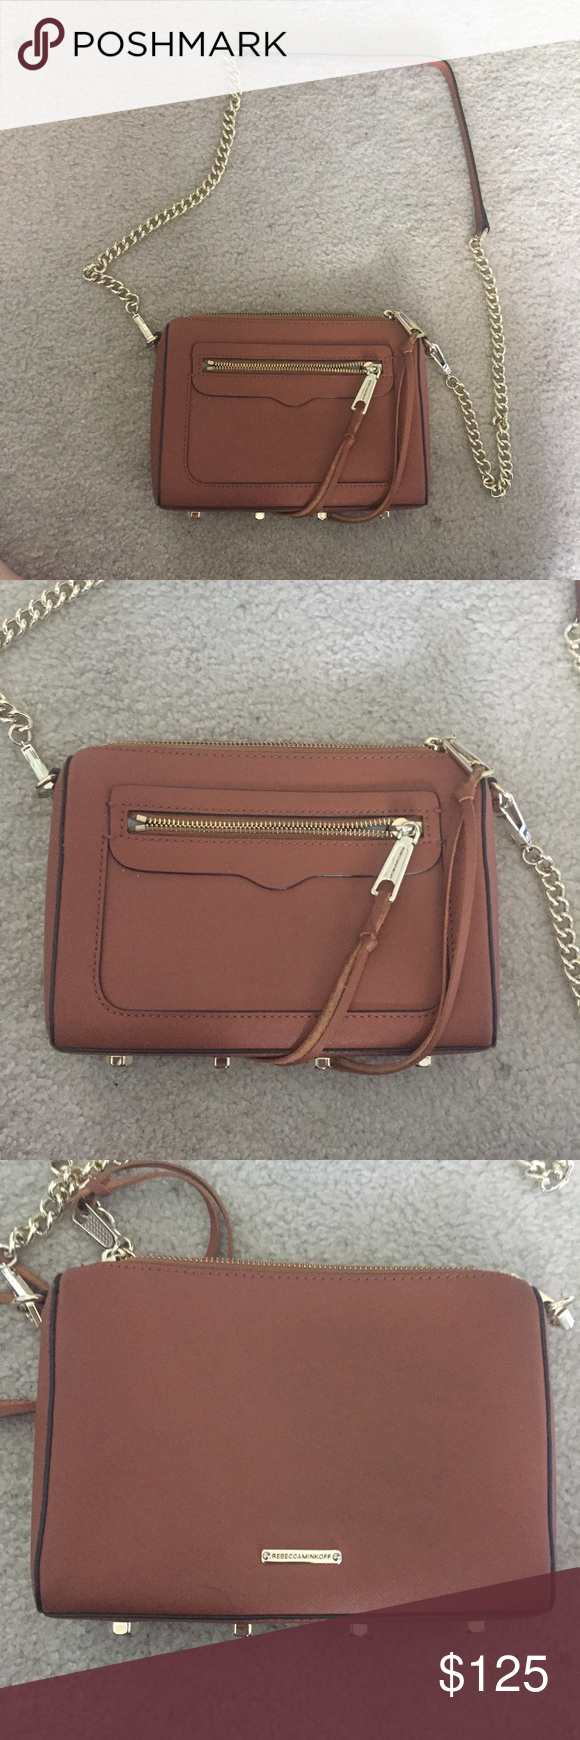 Rebecca Minkoff Avery Crossbody Tan color, literally perfect condition, no flaws, worn a couple of times, gold hardware *LISTED PRICE IS FIRM* Rebecca Minkoff Bags Crossbody Bags